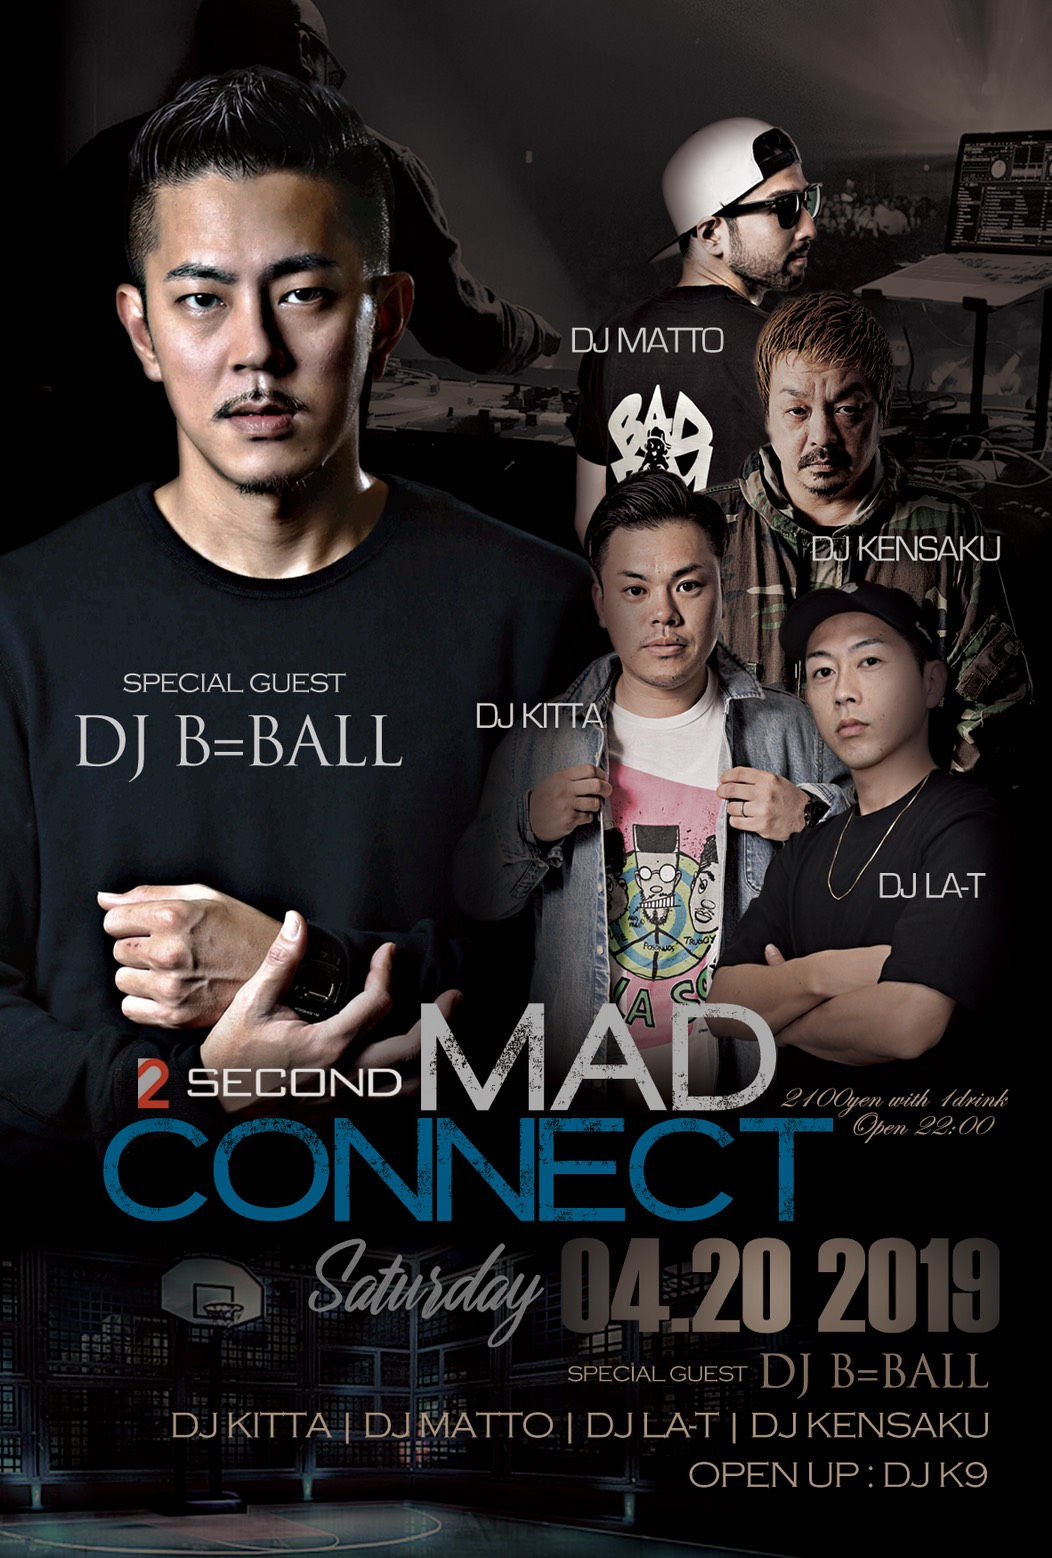 MAD CONNECT at SECOND